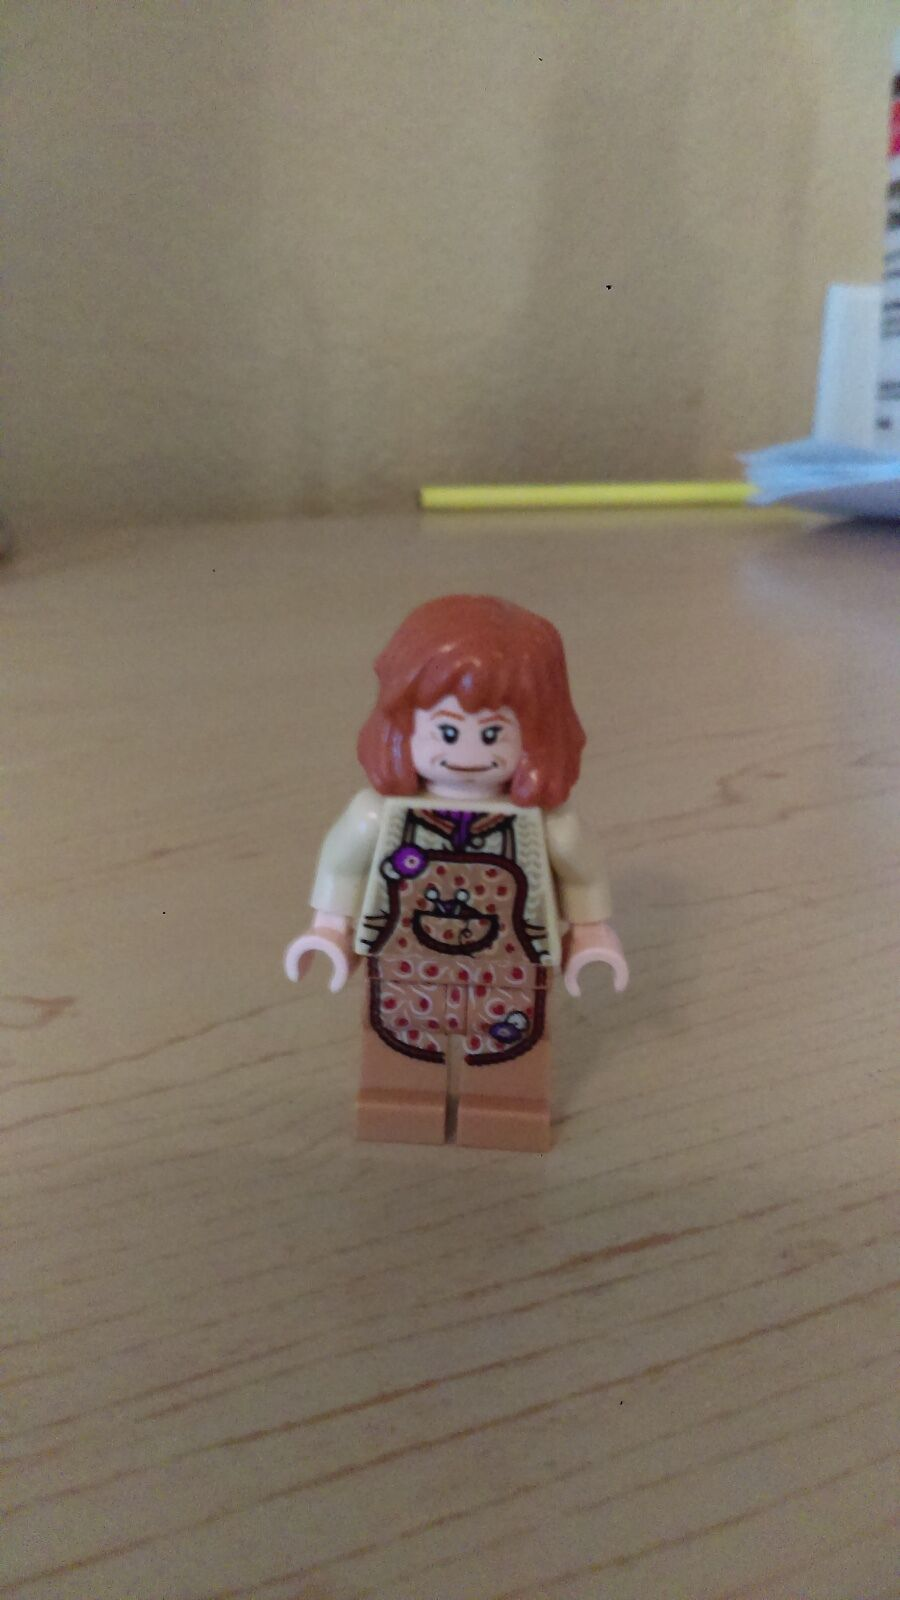 Lego Harry Potter Molly Weasley Mini figure VRHTF